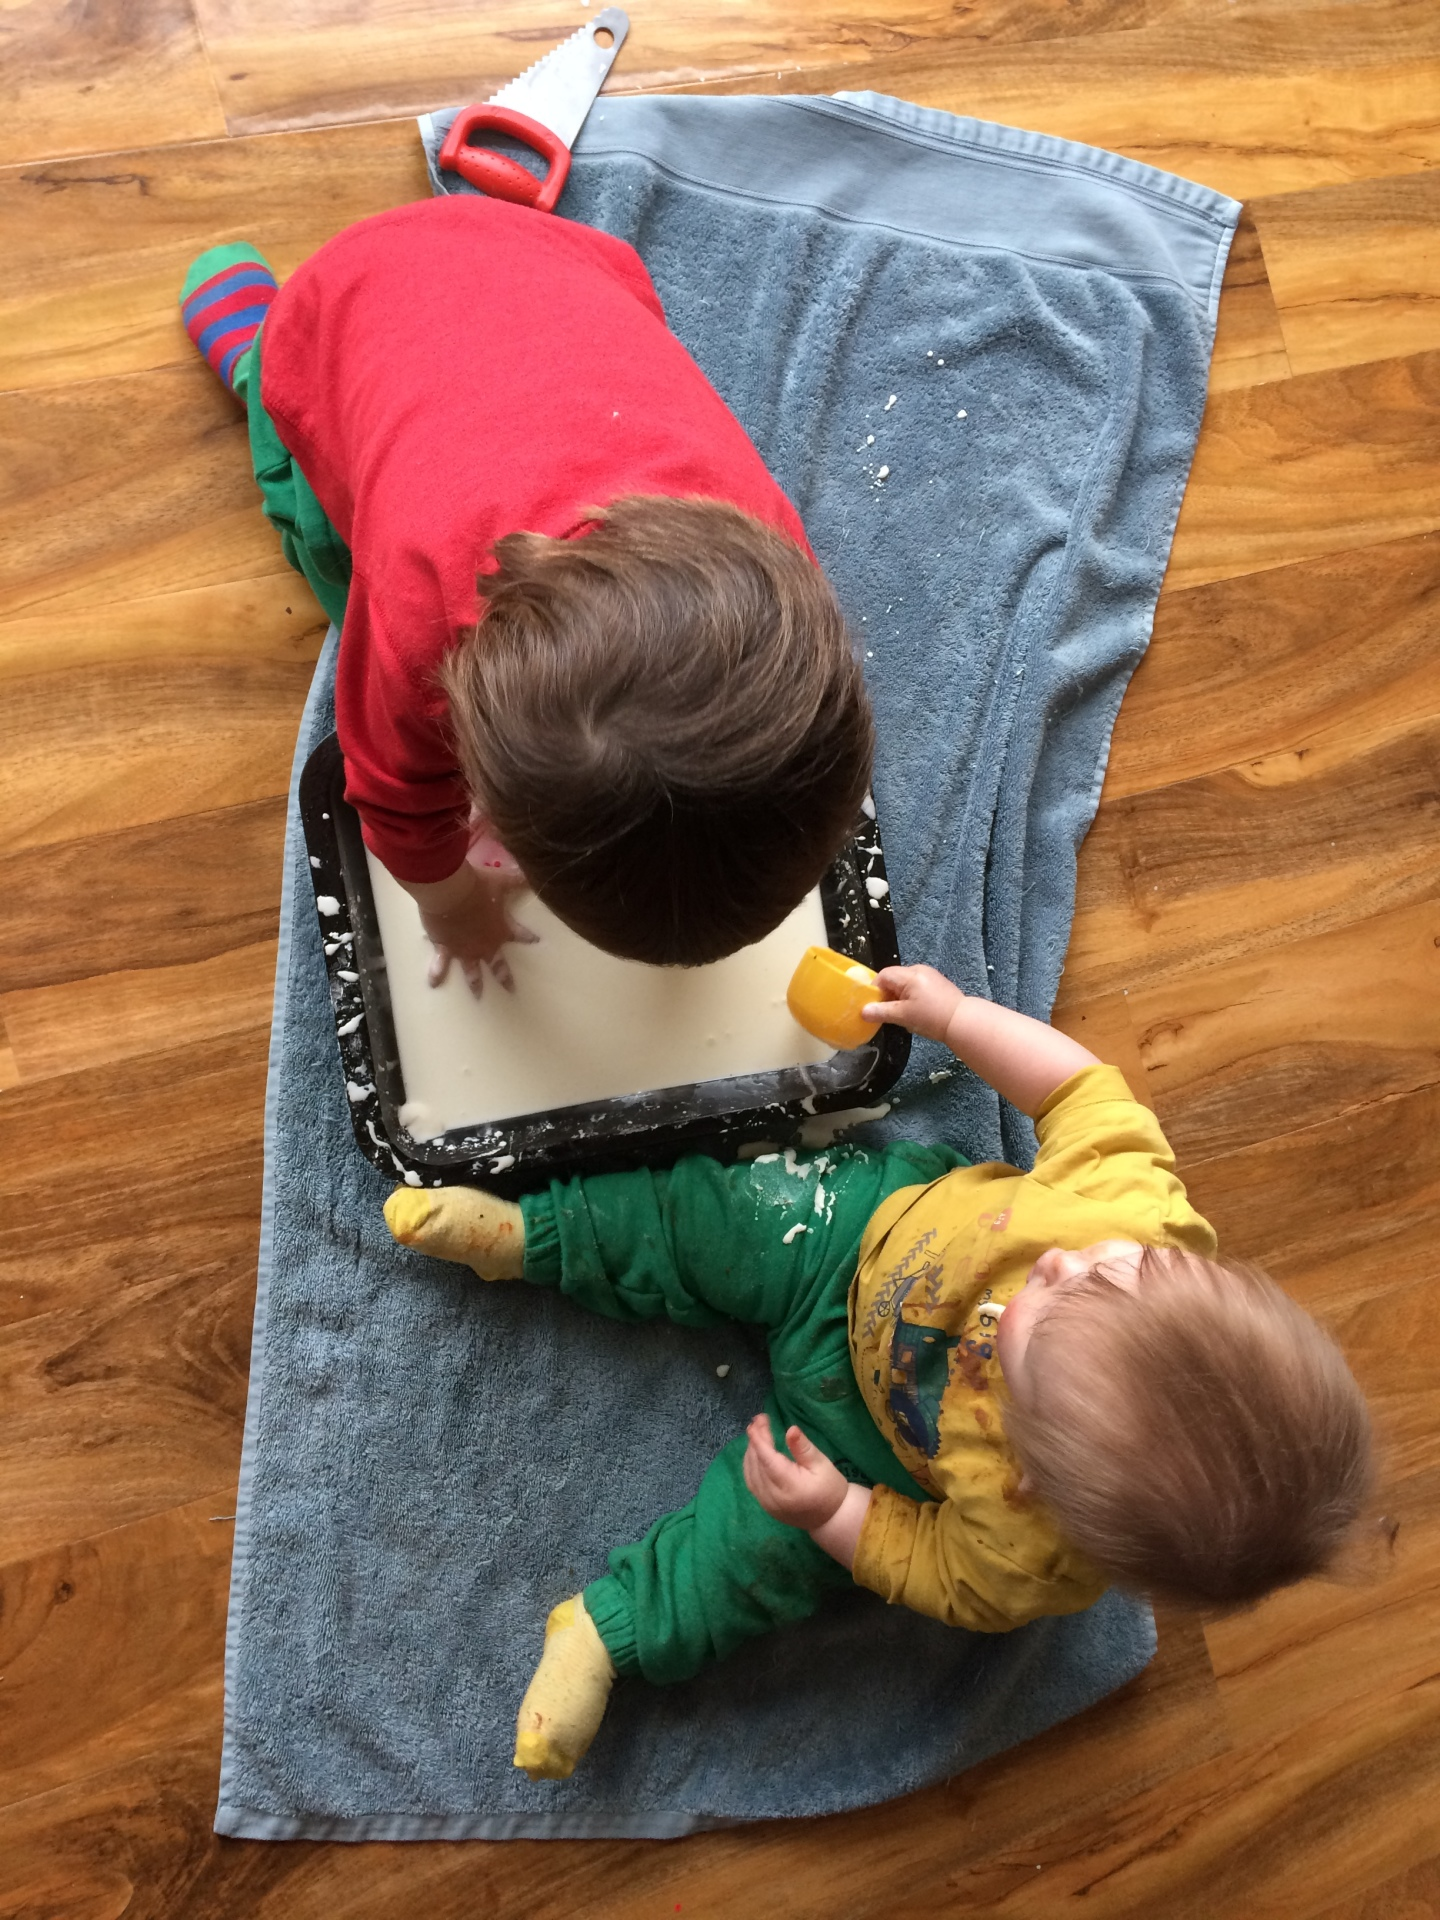 Sensory Play for Babies and Toddlers - Easy to do tips for home